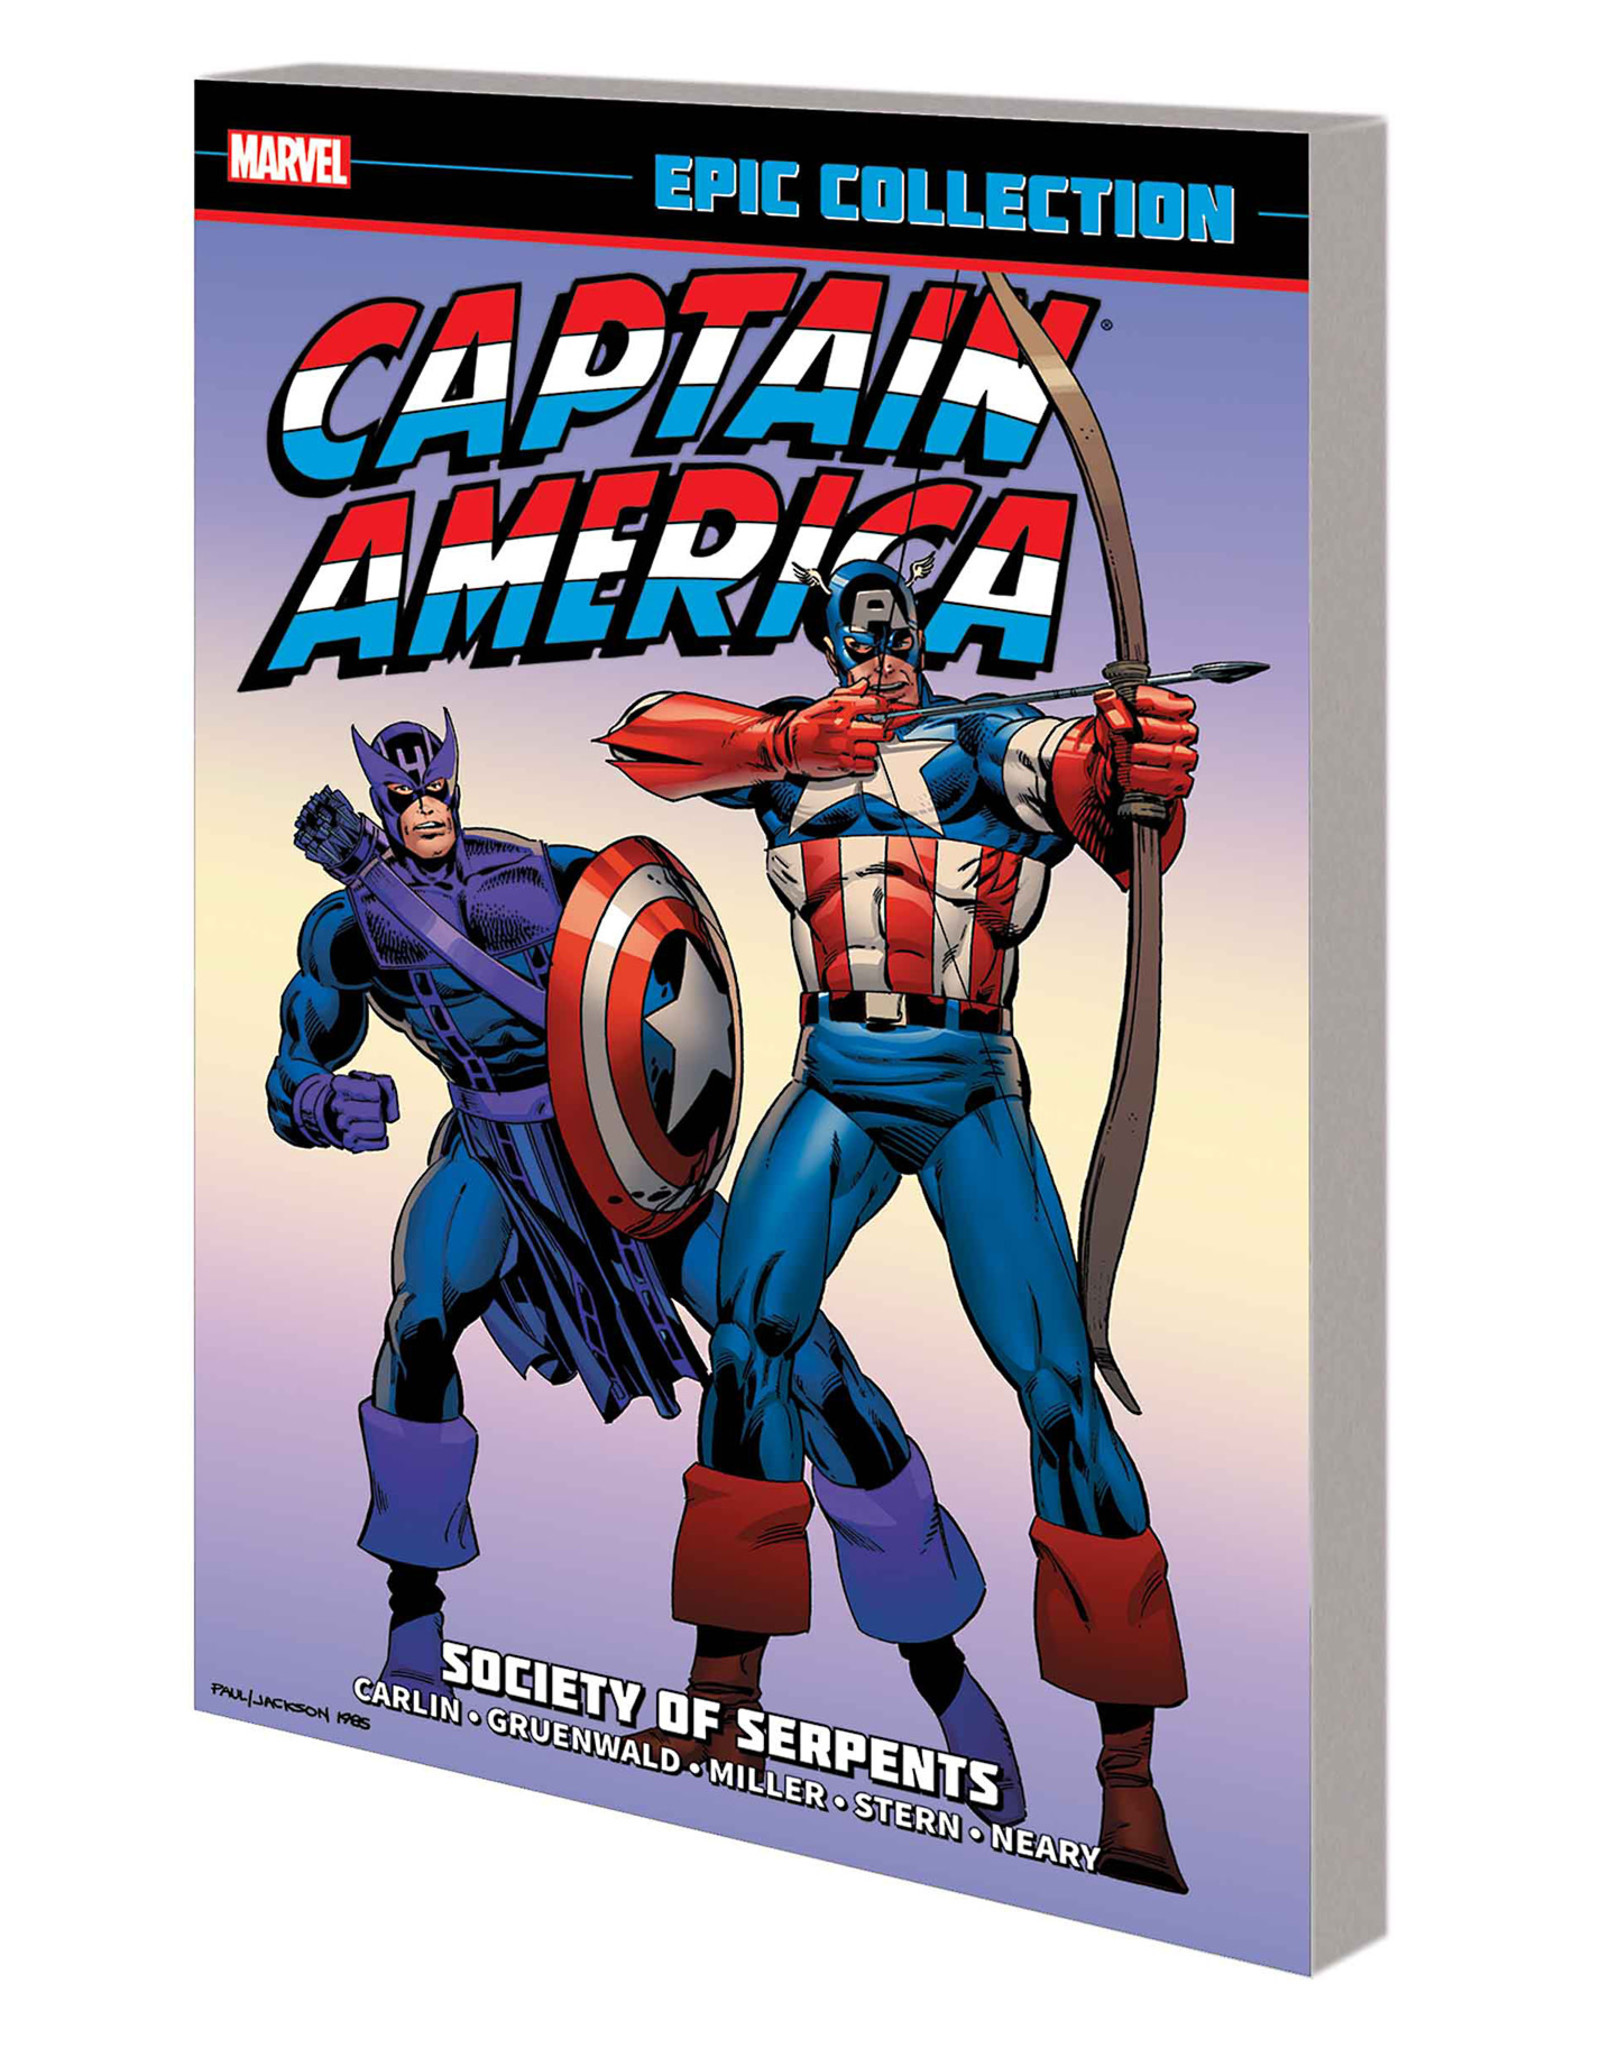 MARVEL COMICS CAPTAIN AMERICA EPIC COLLECTION SOCIETY SERPENTS TP